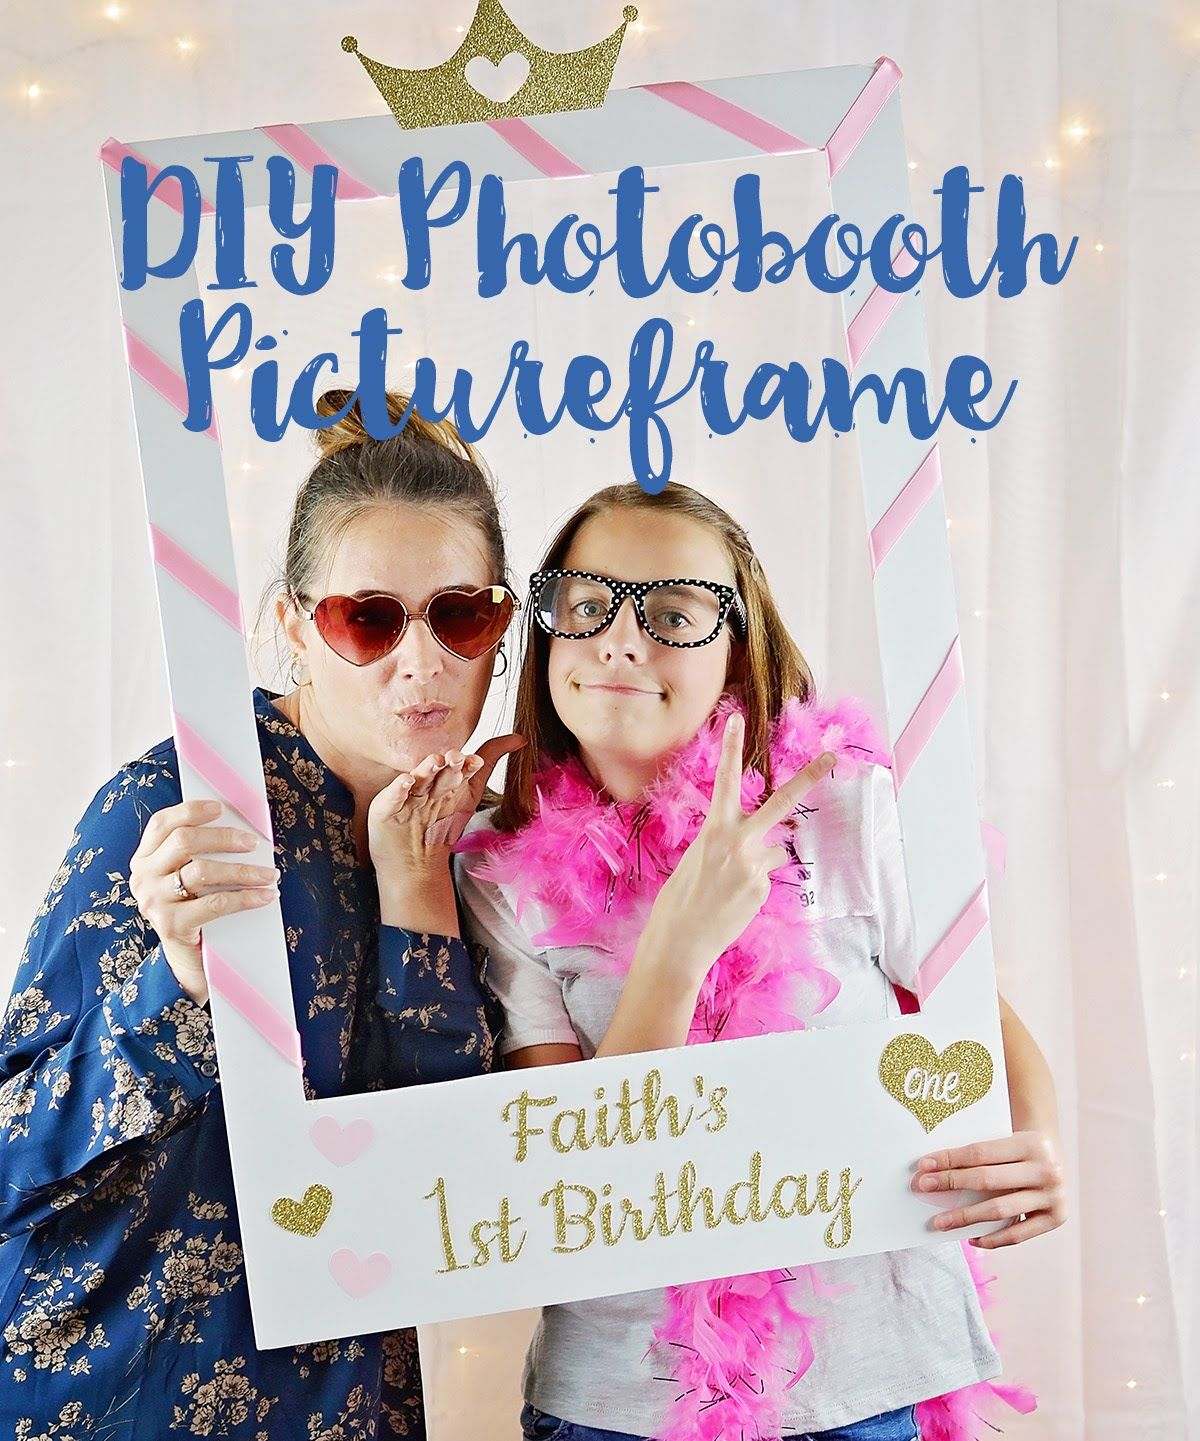 06d7322c68 How to Make a Photo Booth Picture Frame - DIY Photo Booth Photo Frame